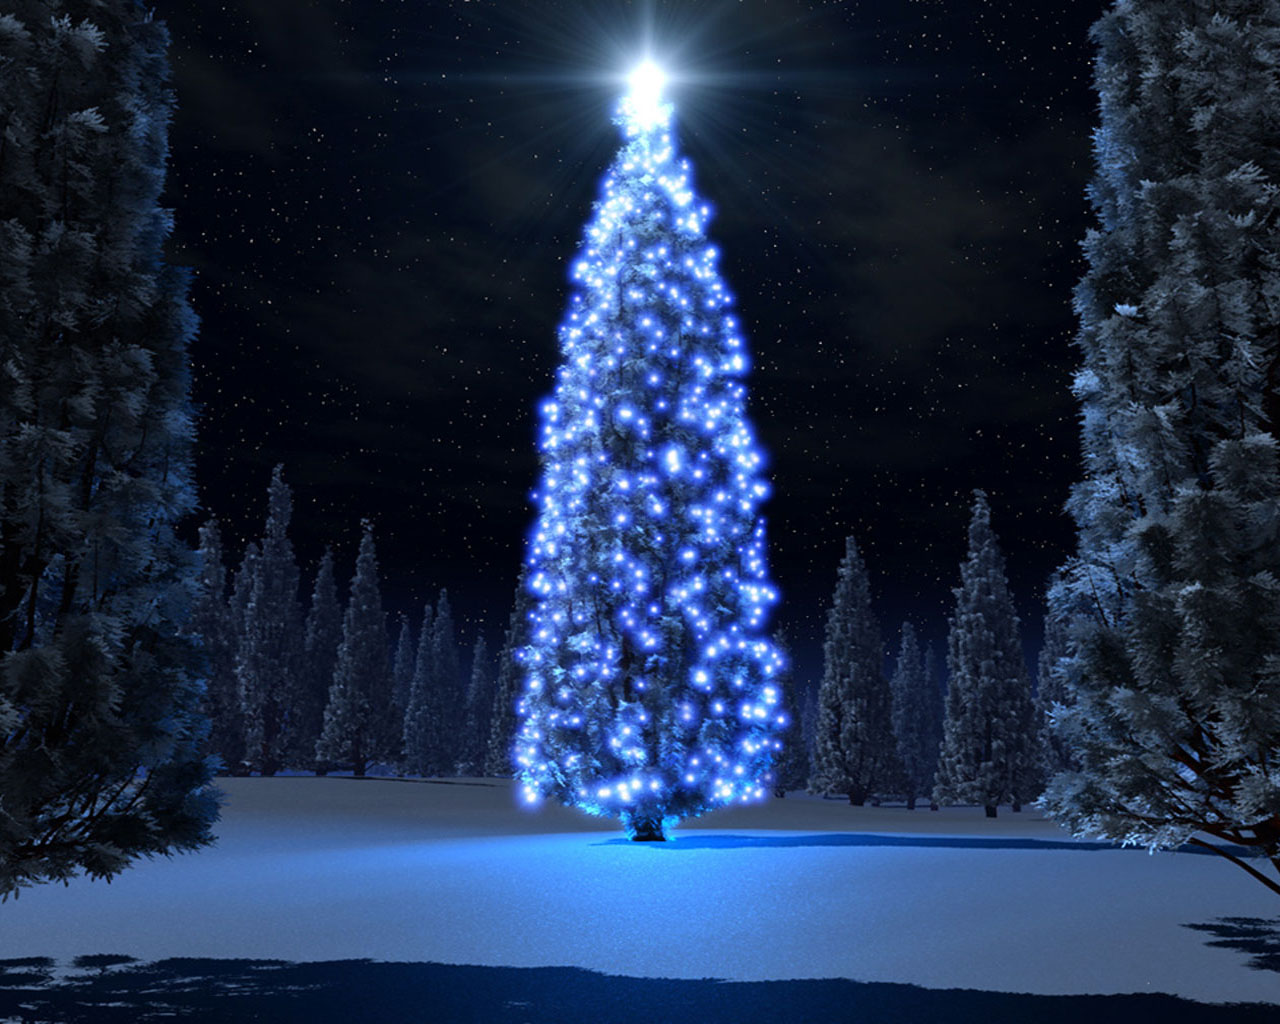 Download wallpaper Christmas tree in the forest: 1213